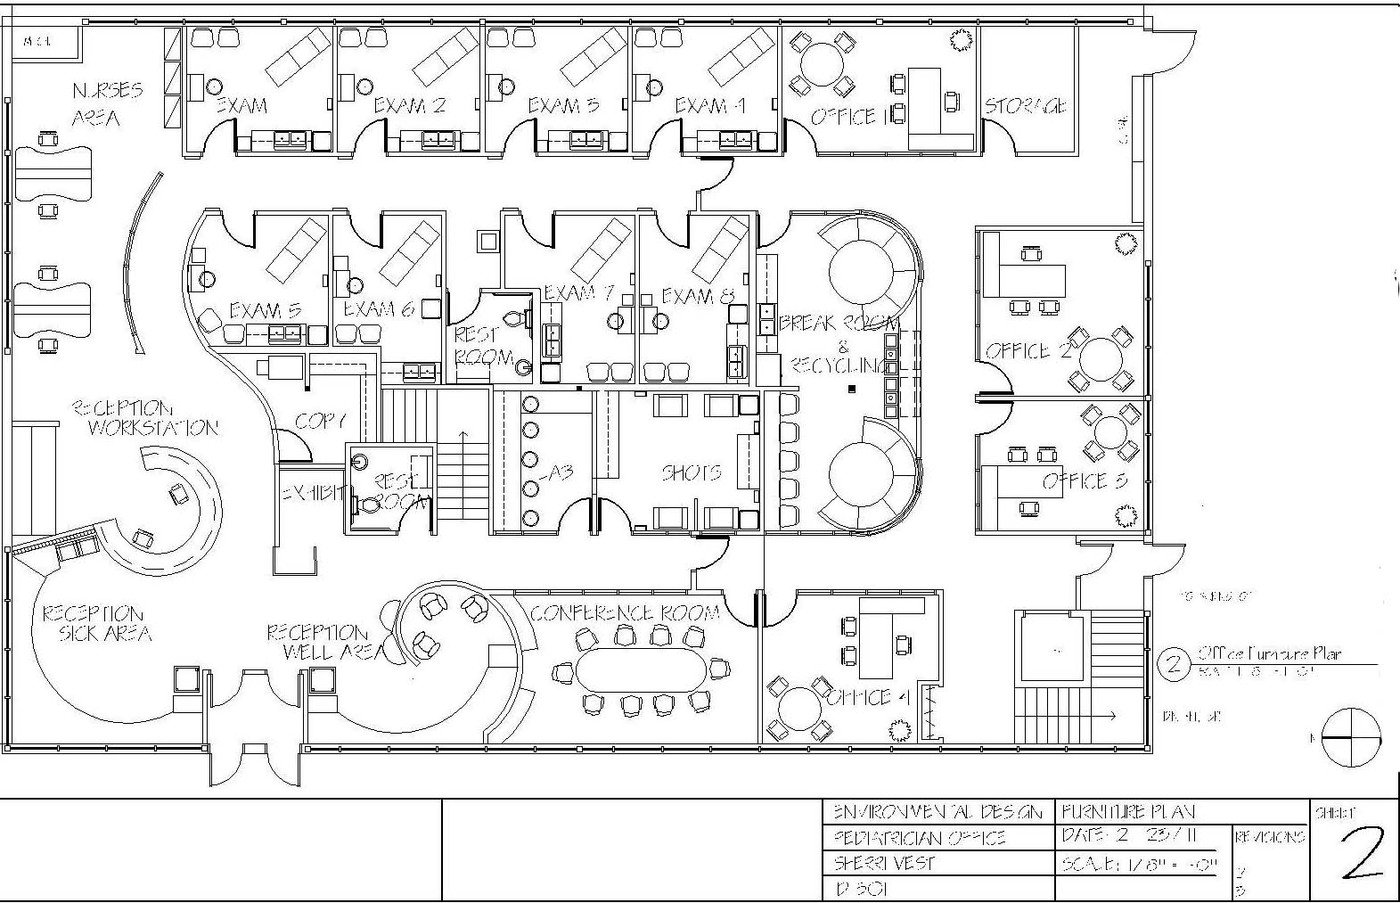 Pediatric Office Floor Plan By Sherri Vest At